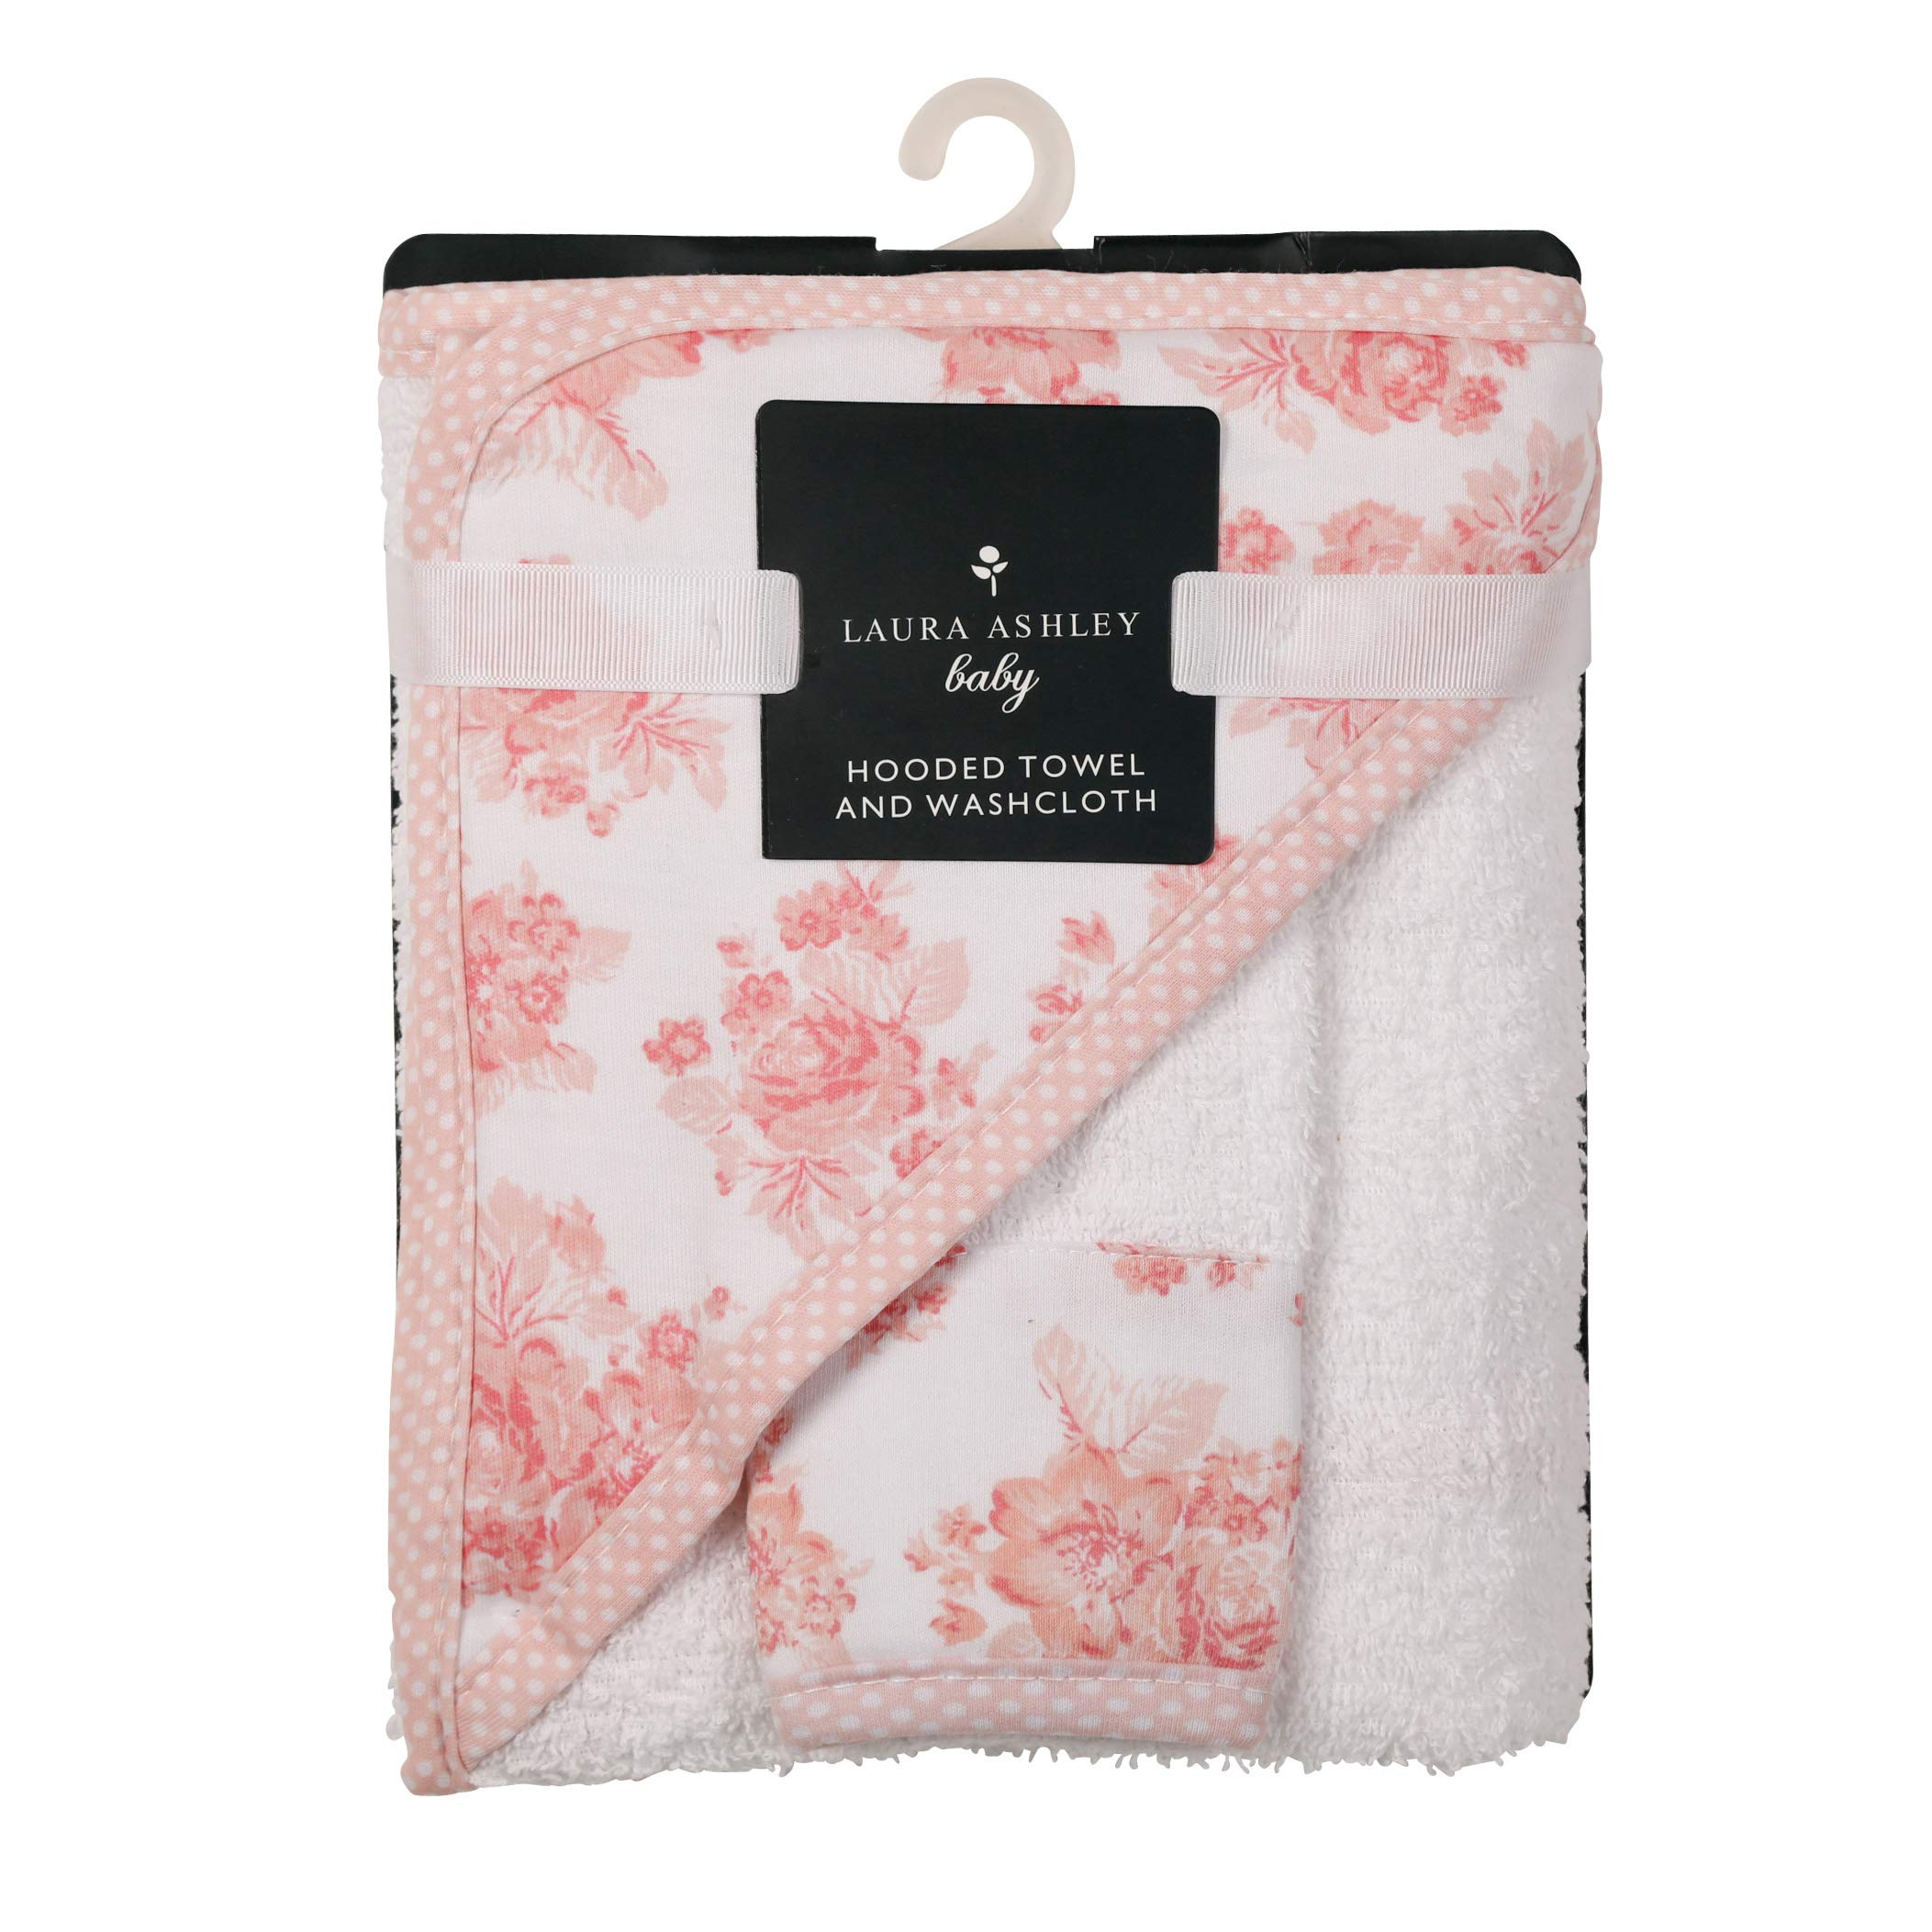 Laura Ashley Infant Hooded Towel and Washcloth, Rose Print by Laura Ashley